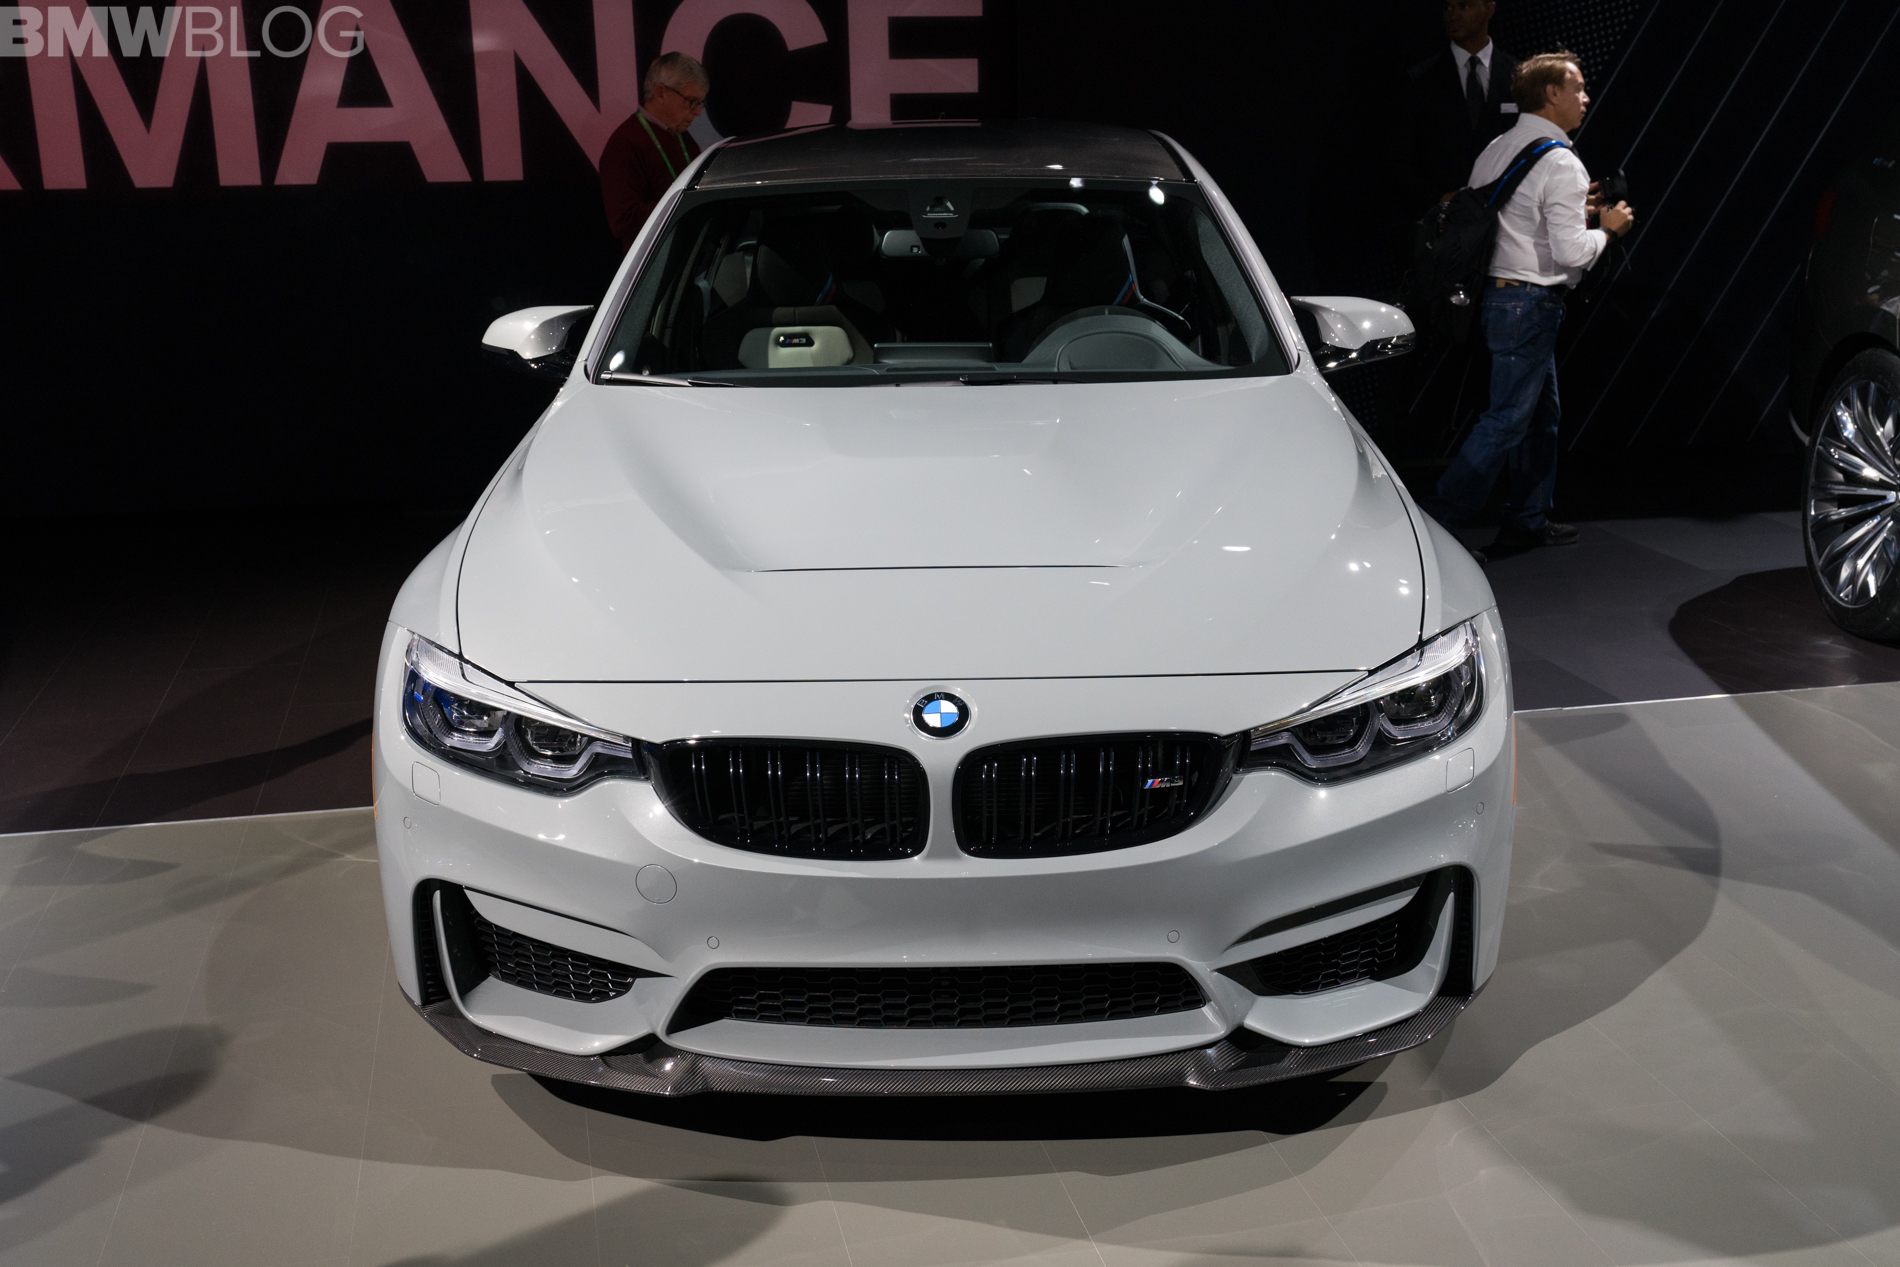 2017 La Auto Show Bmw M3 Cs Makes World Debut